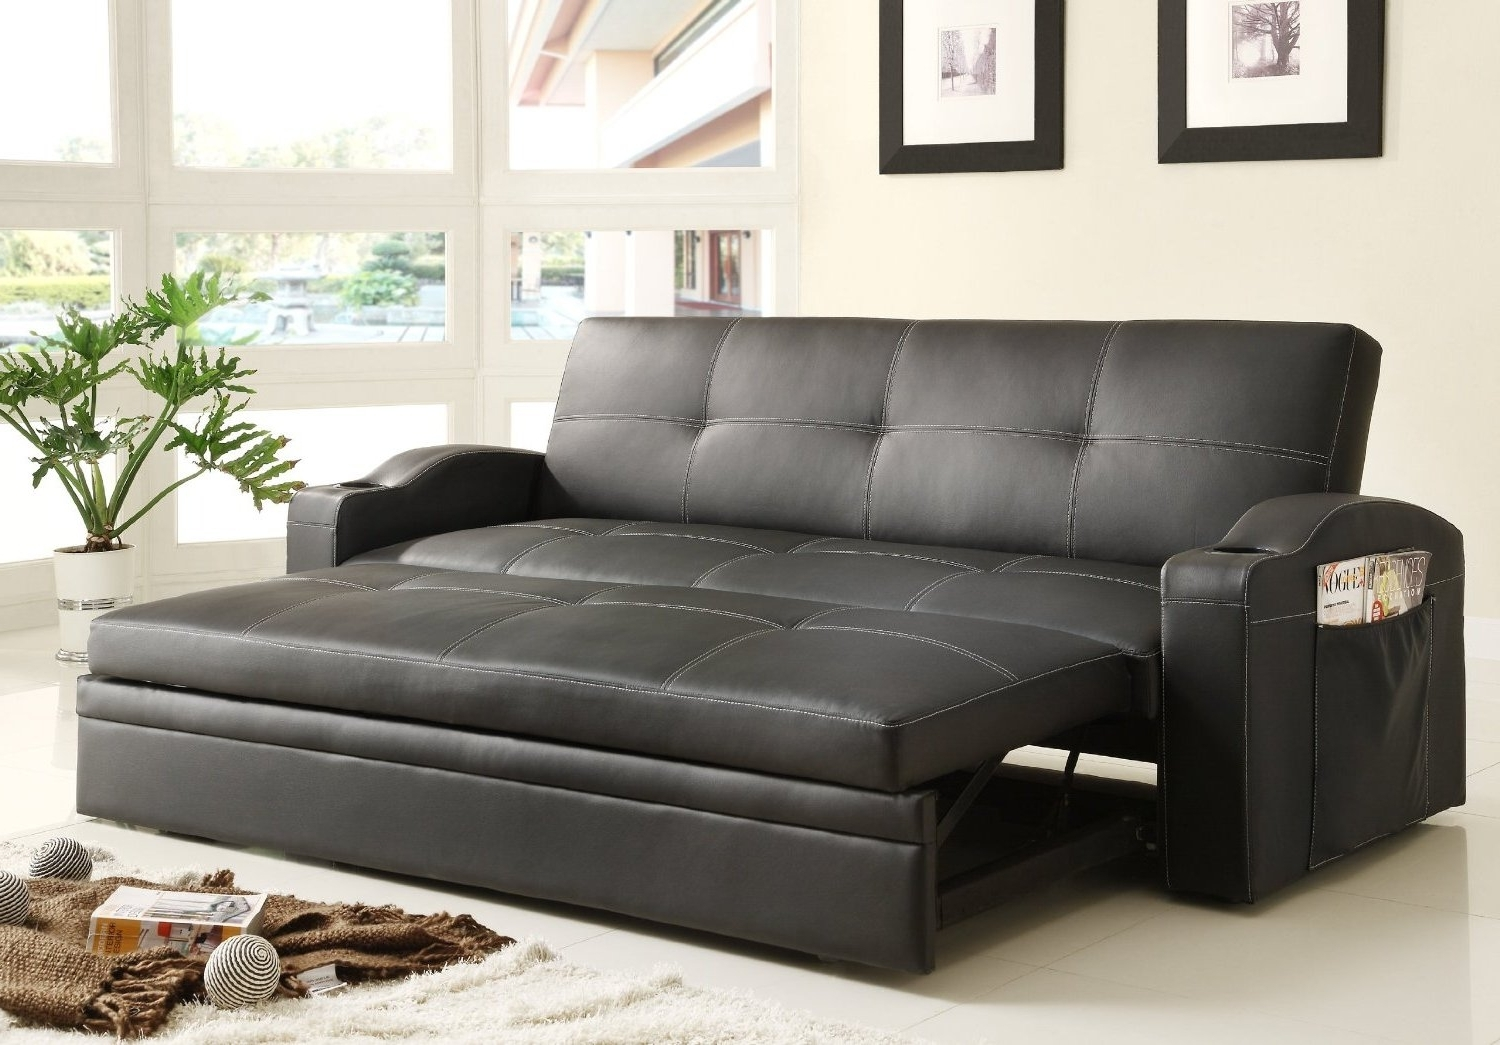 Queen Size Sofas regarding Widely used Adjustable Queen Size Sofa Bed Black Color Upholstered In Black Bi